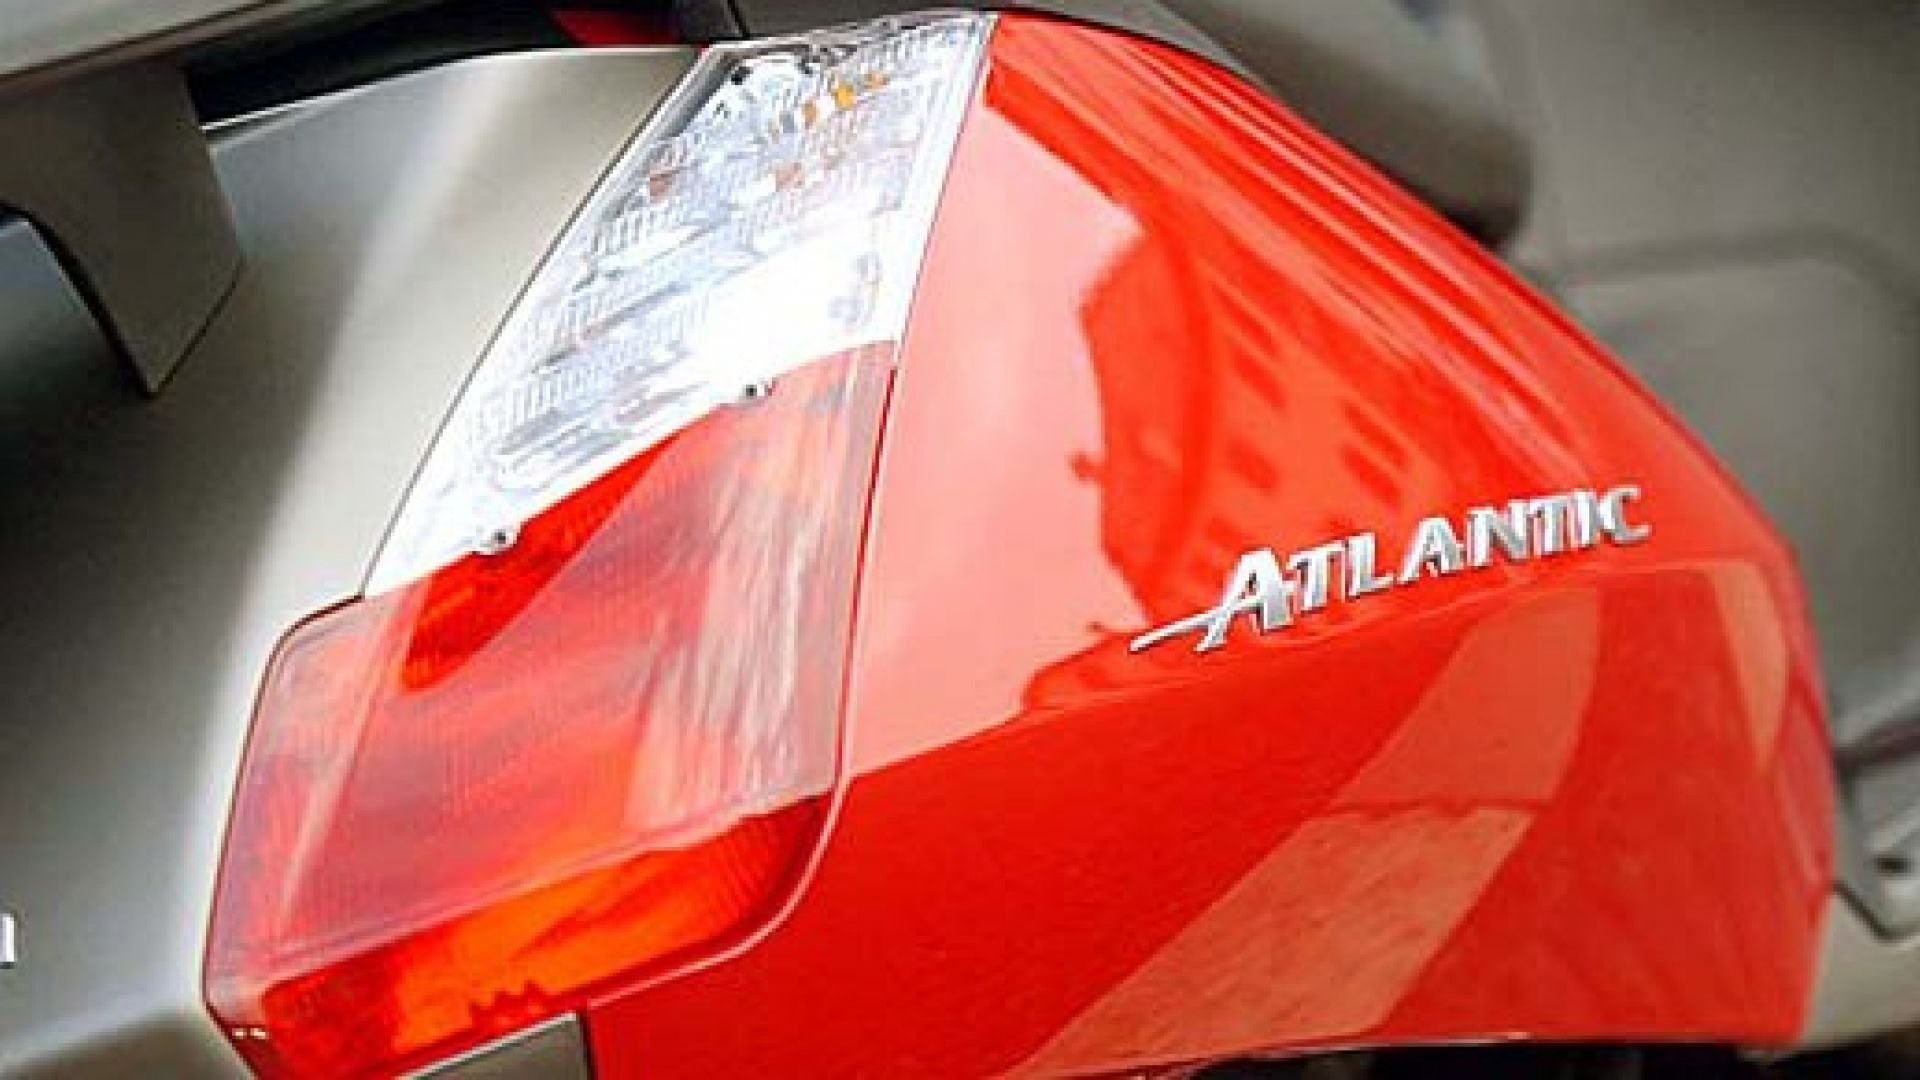 Immagine 2: In sella a: Aprilia Atlantic 125-200